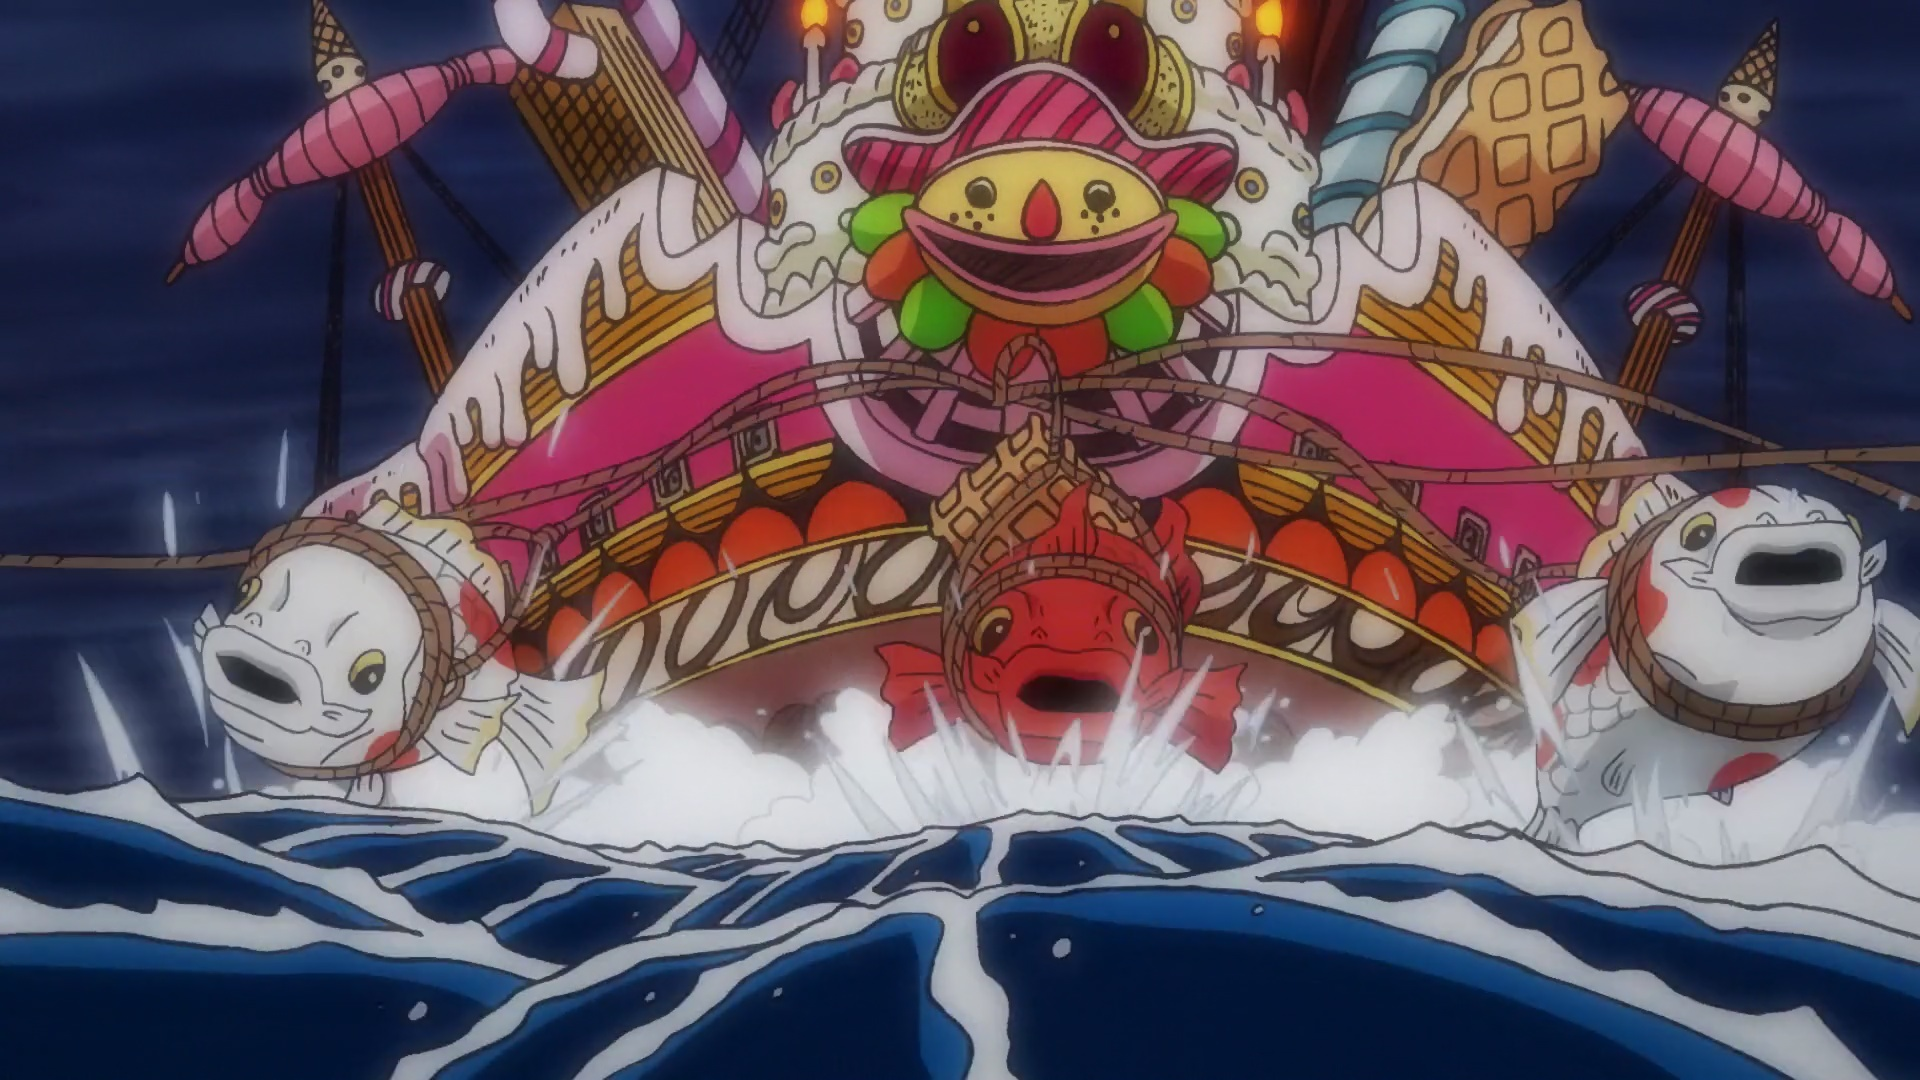 ONE PIECE 923 VOSTFR SD/HD/HD 10BITS/FHD News background